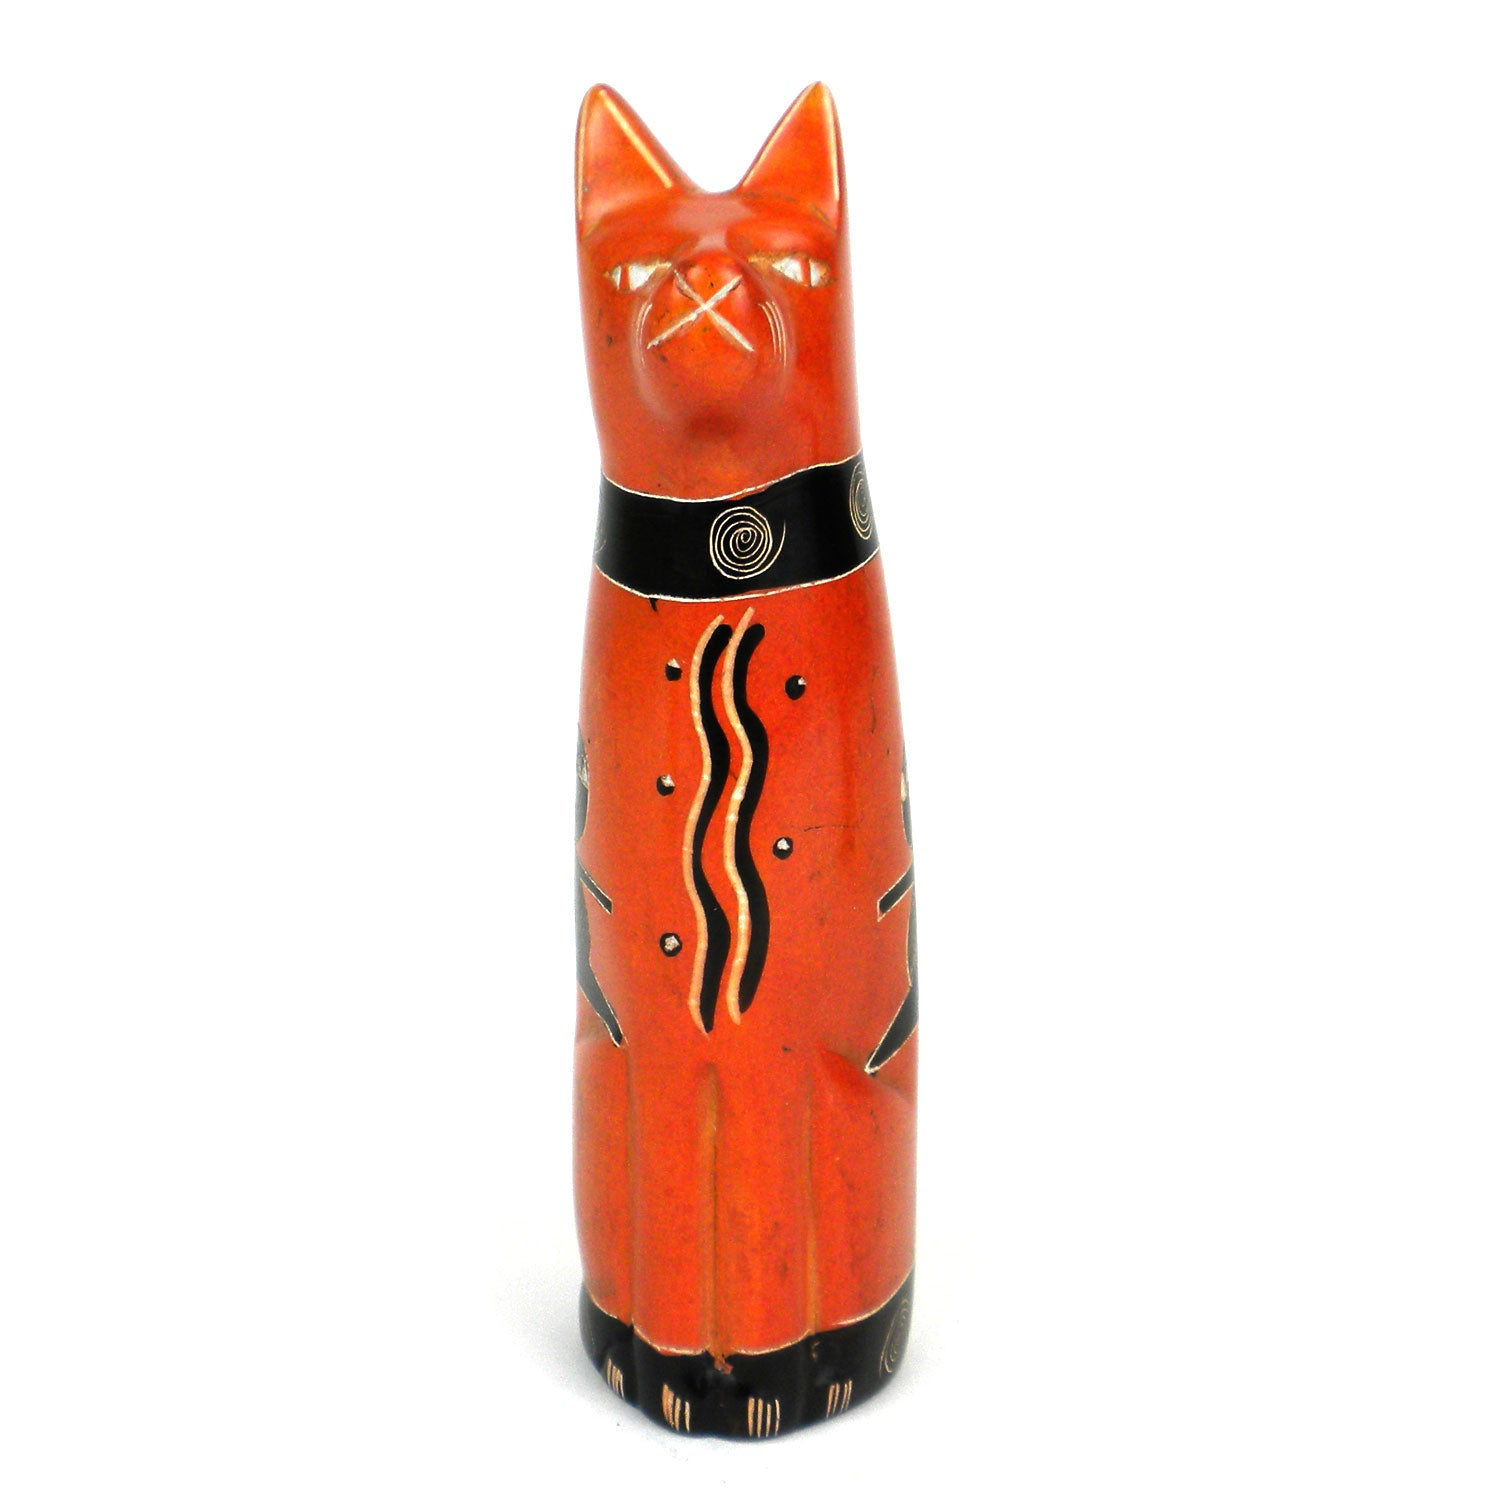 5-inch Soapstone Sitting Cat Sculpture in Orange